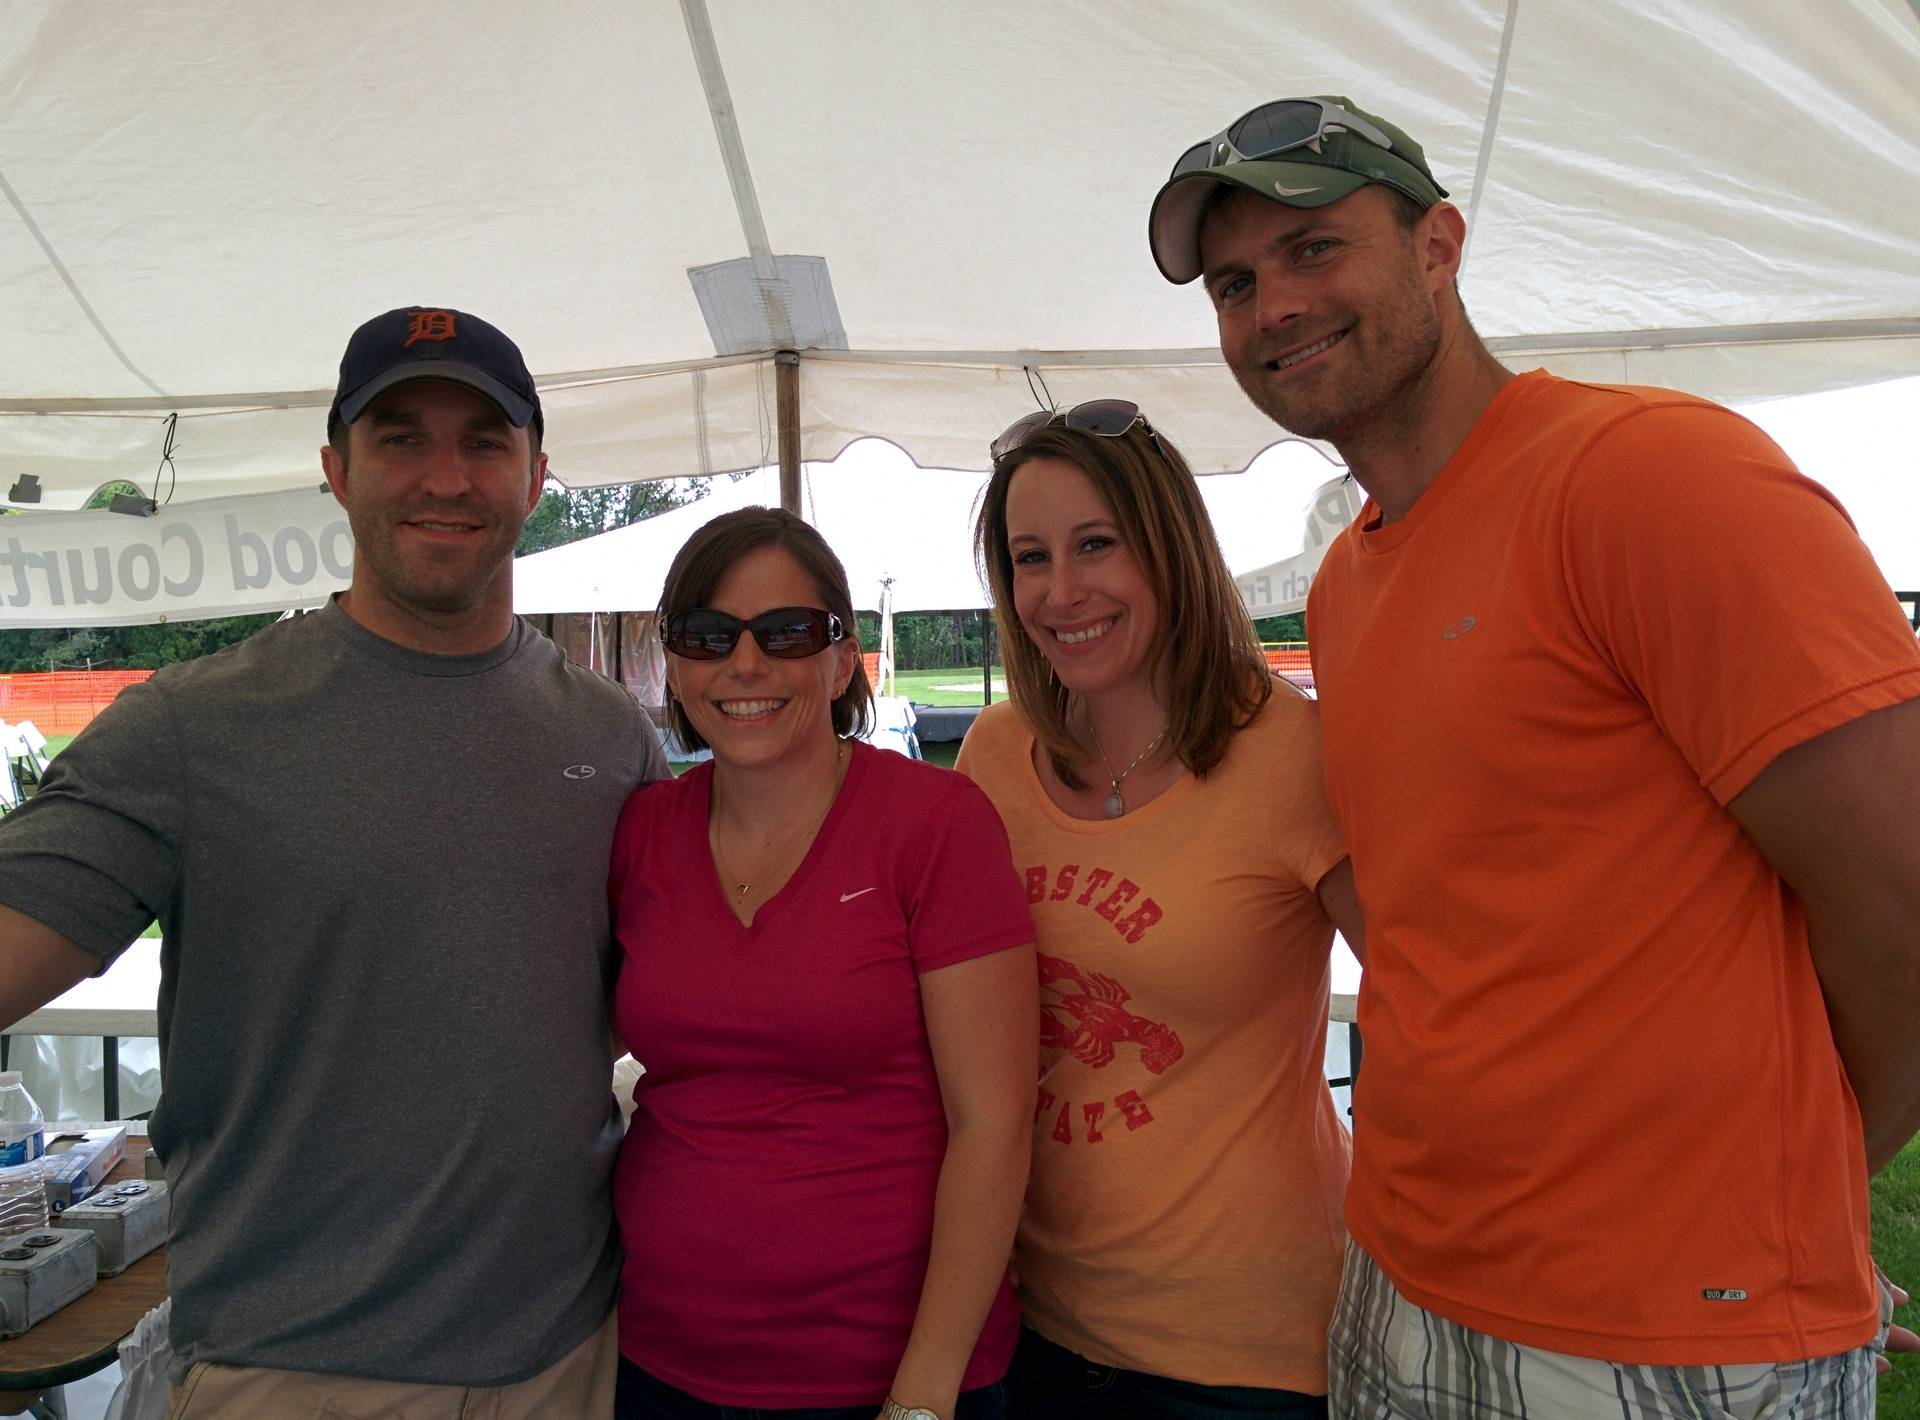 The food tent interns.  Next year they will take over.